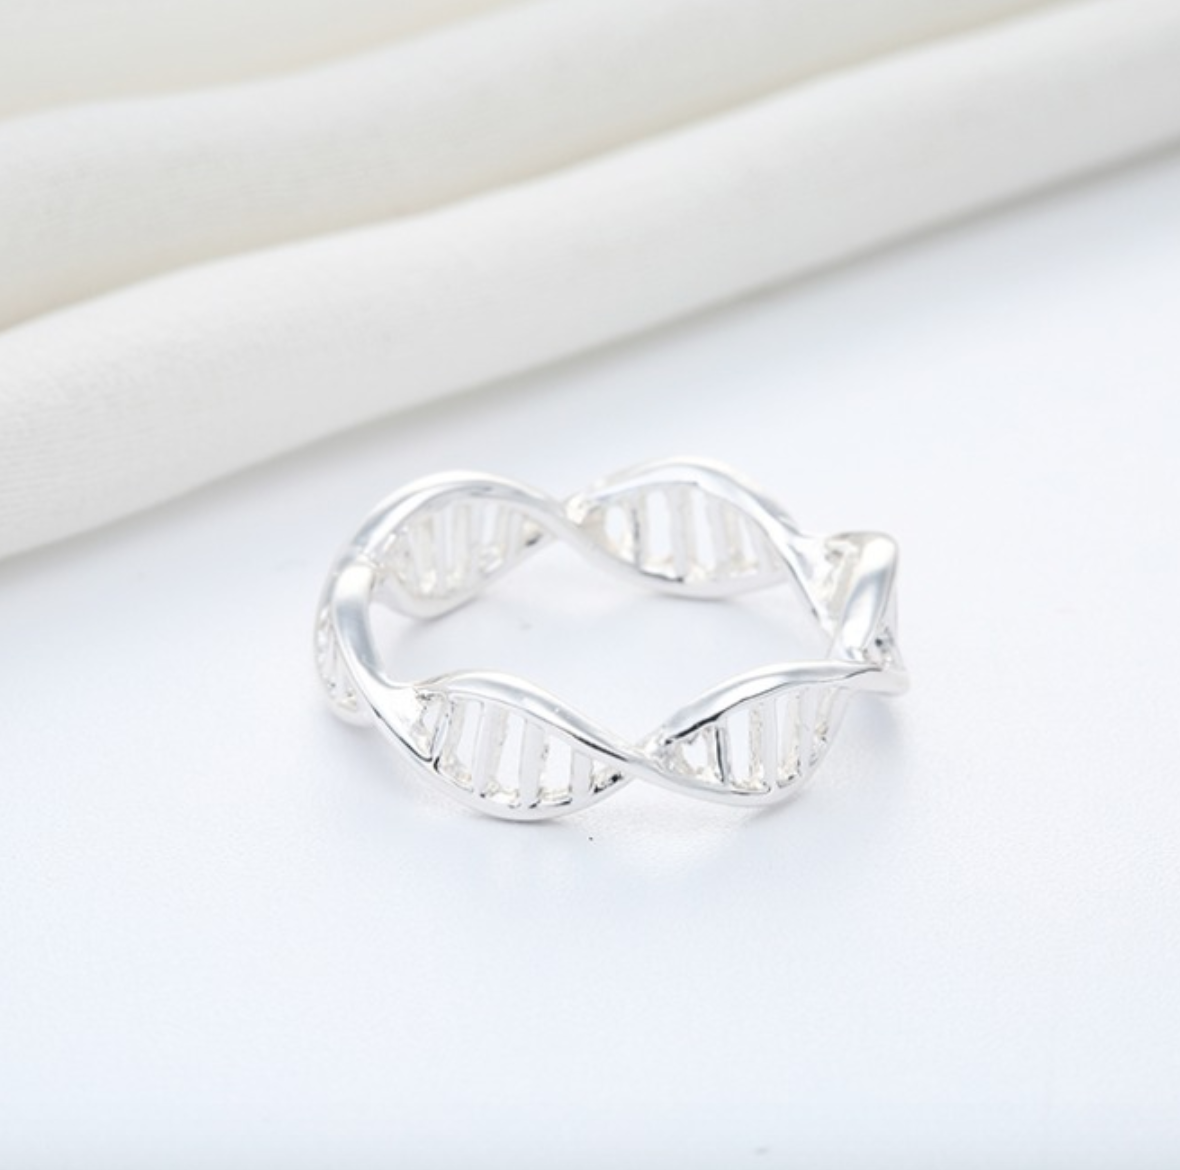 The Infinity DNA Ring